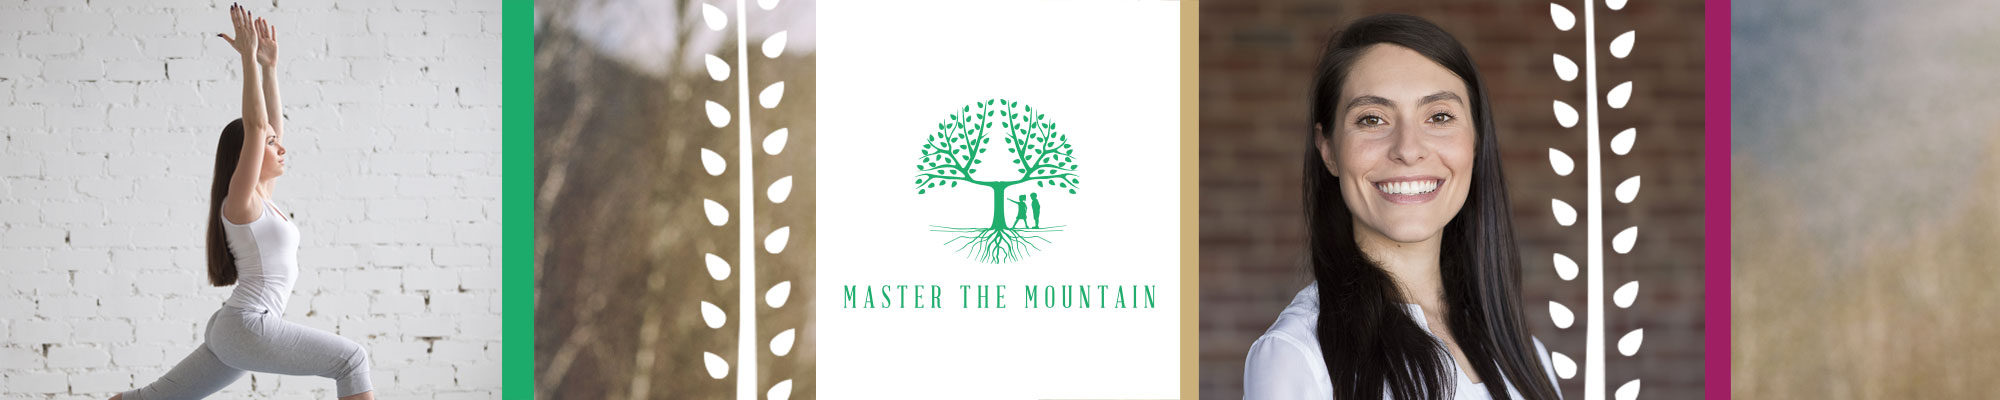 Master the Mountain logo banner